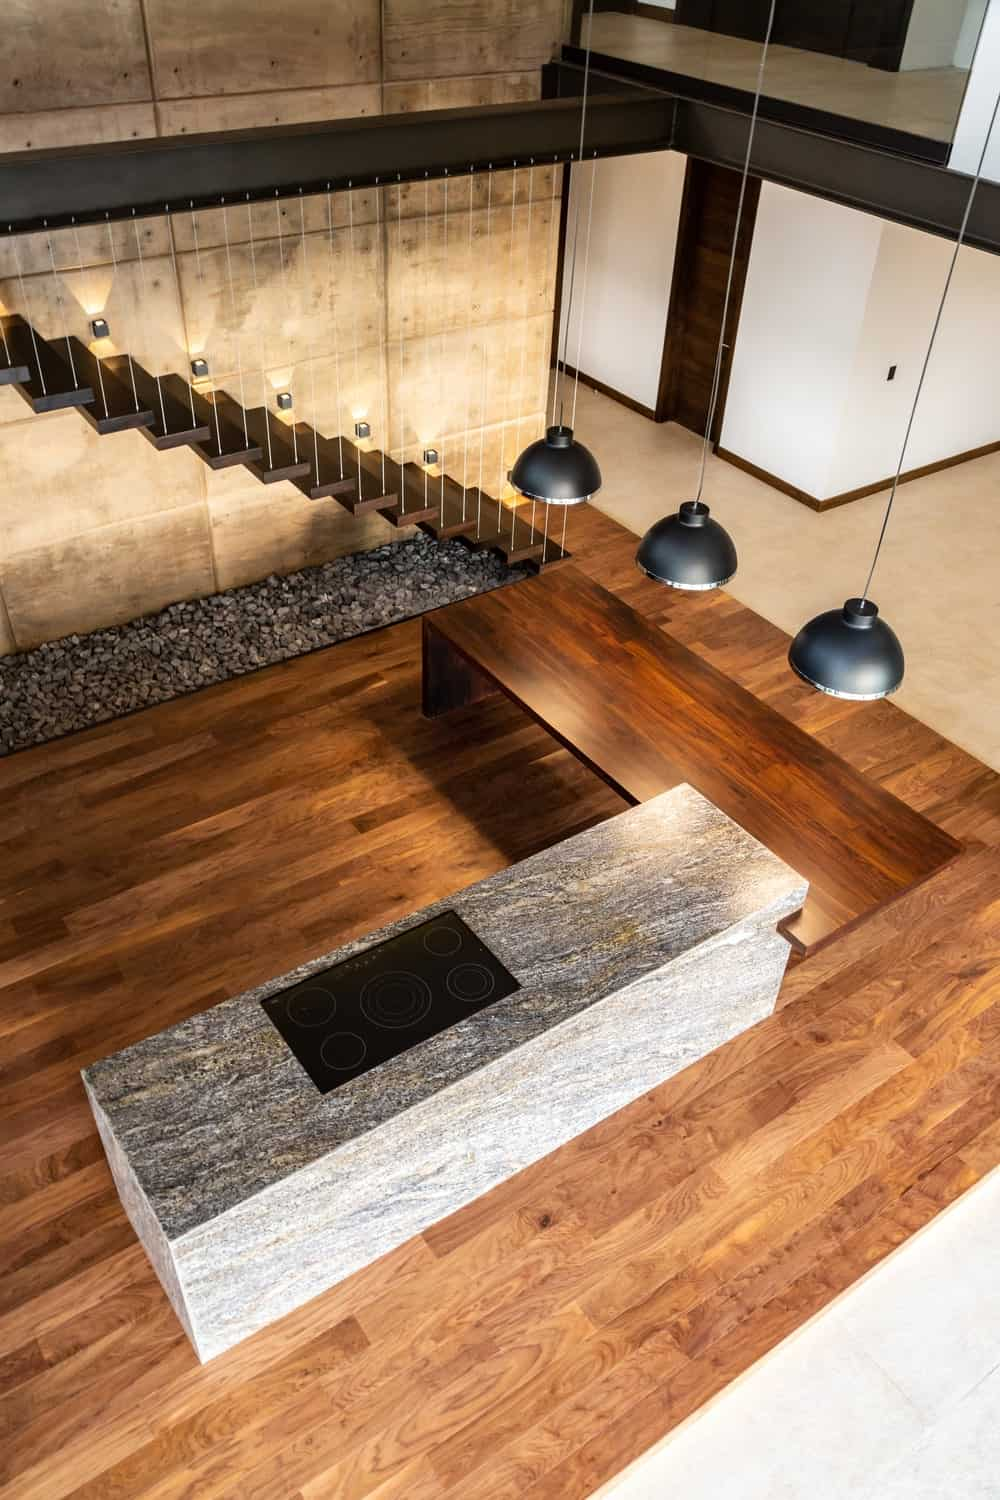 This is a view of the large L-shaped kitchen island from the vantage of the indoor balcony.